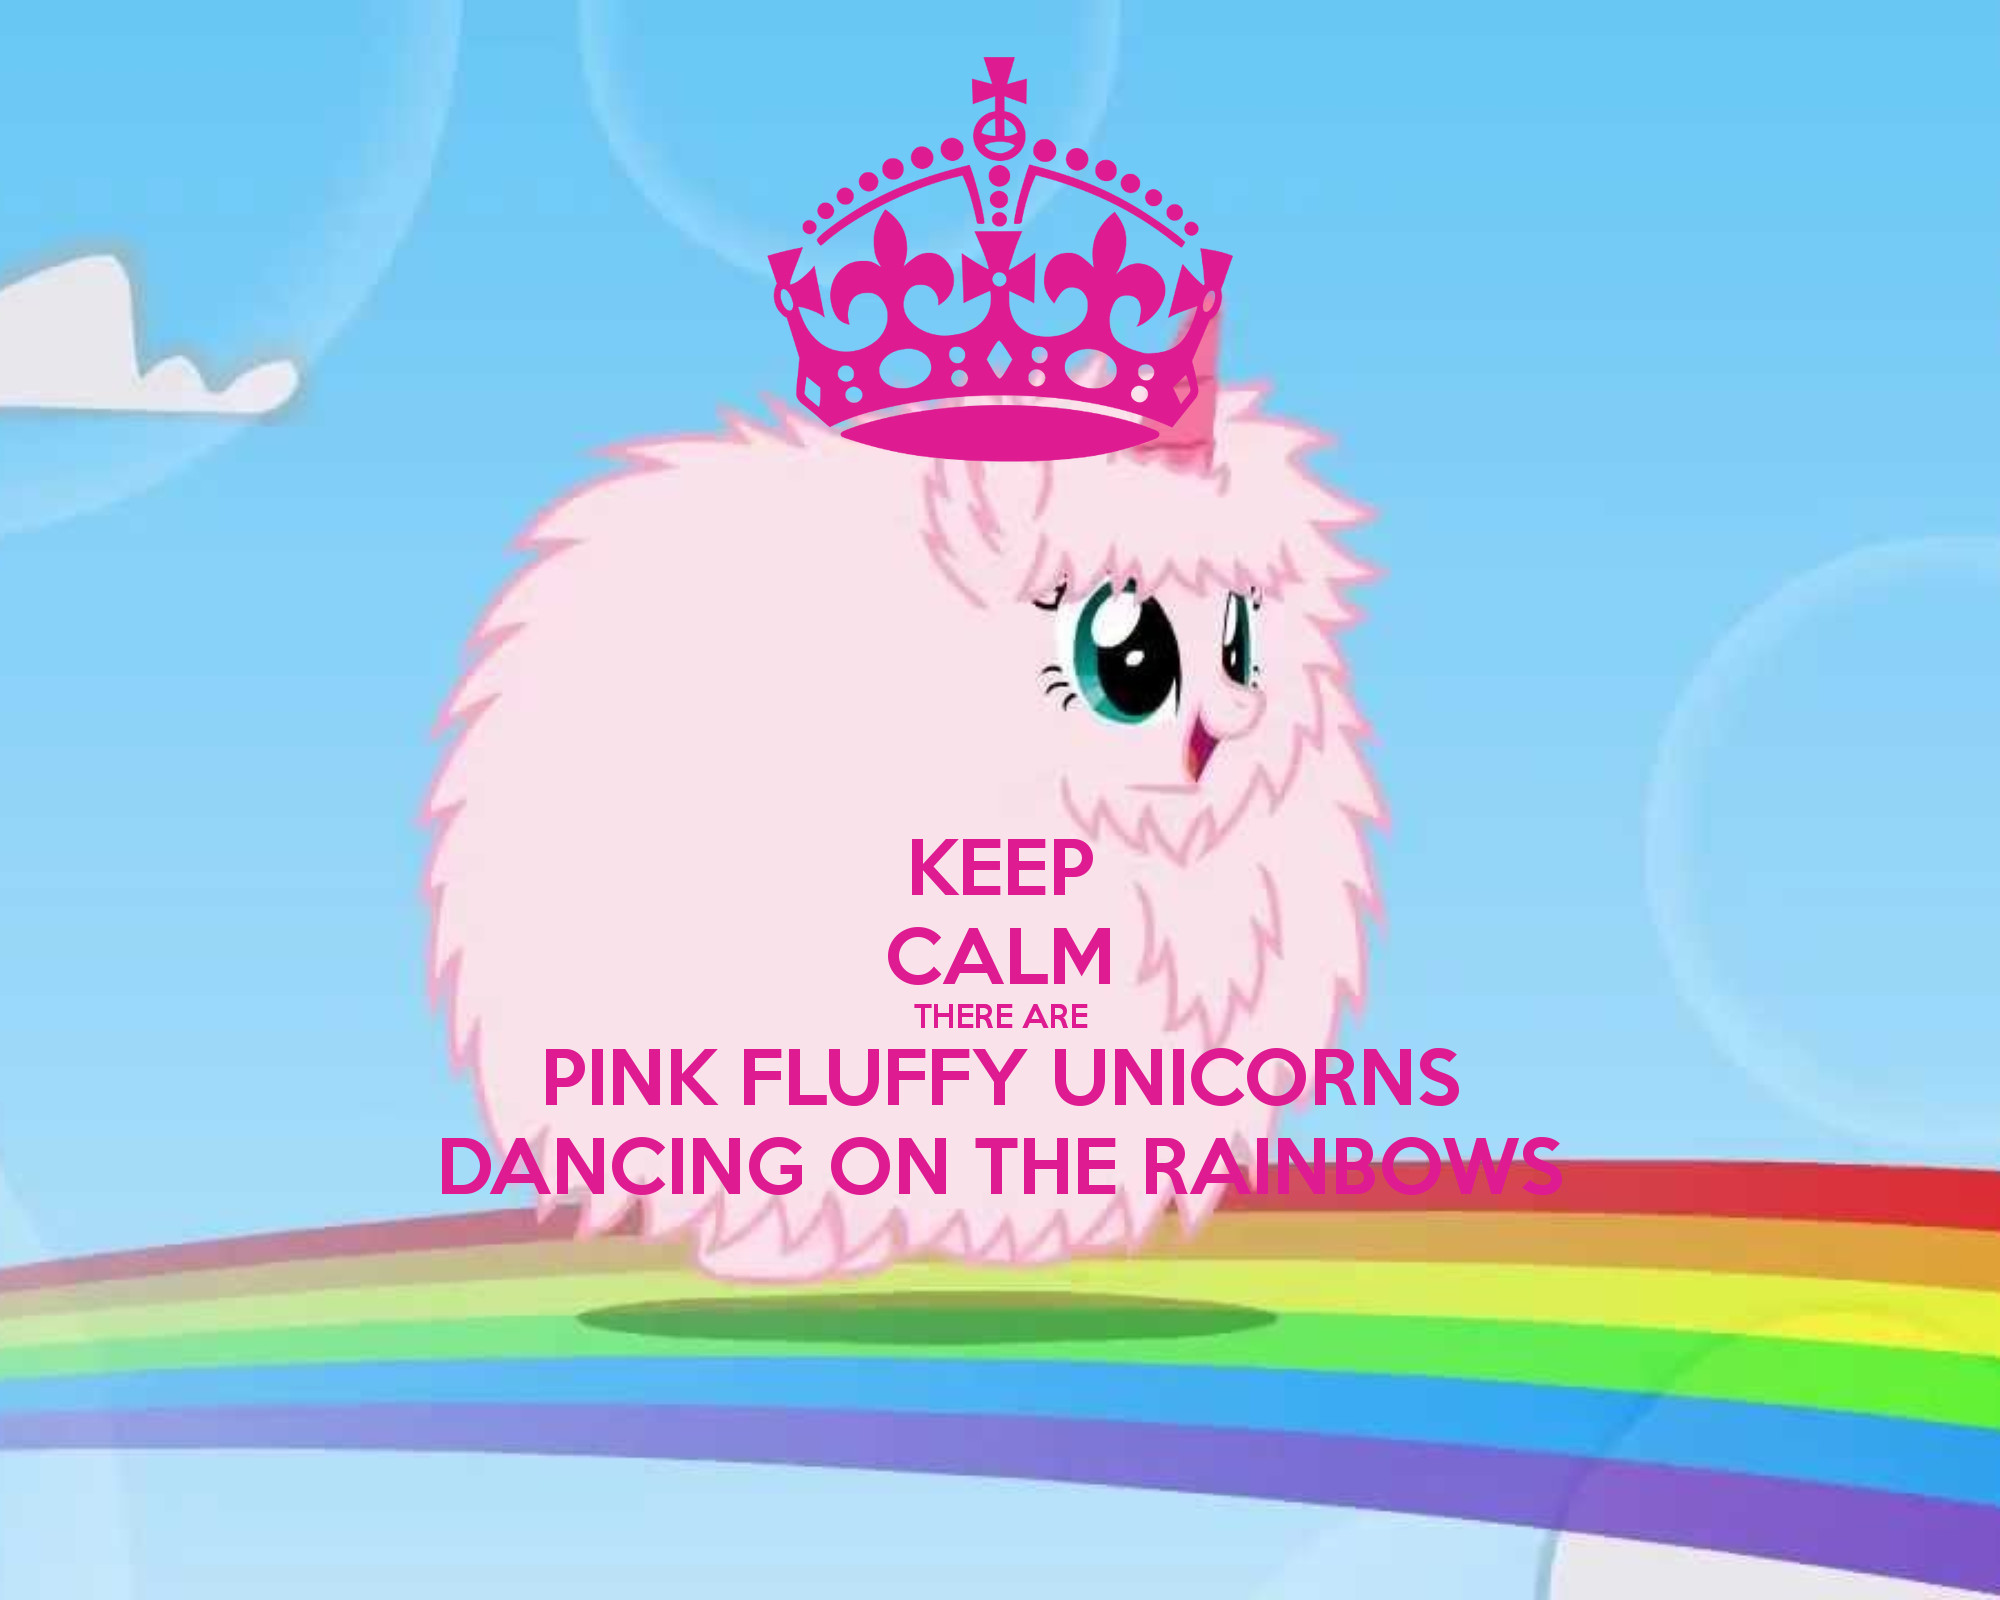 Super Duper Cute Wallpapers Pink Fluffy Unicorns Wallpapers 183 ① Wallpapertag